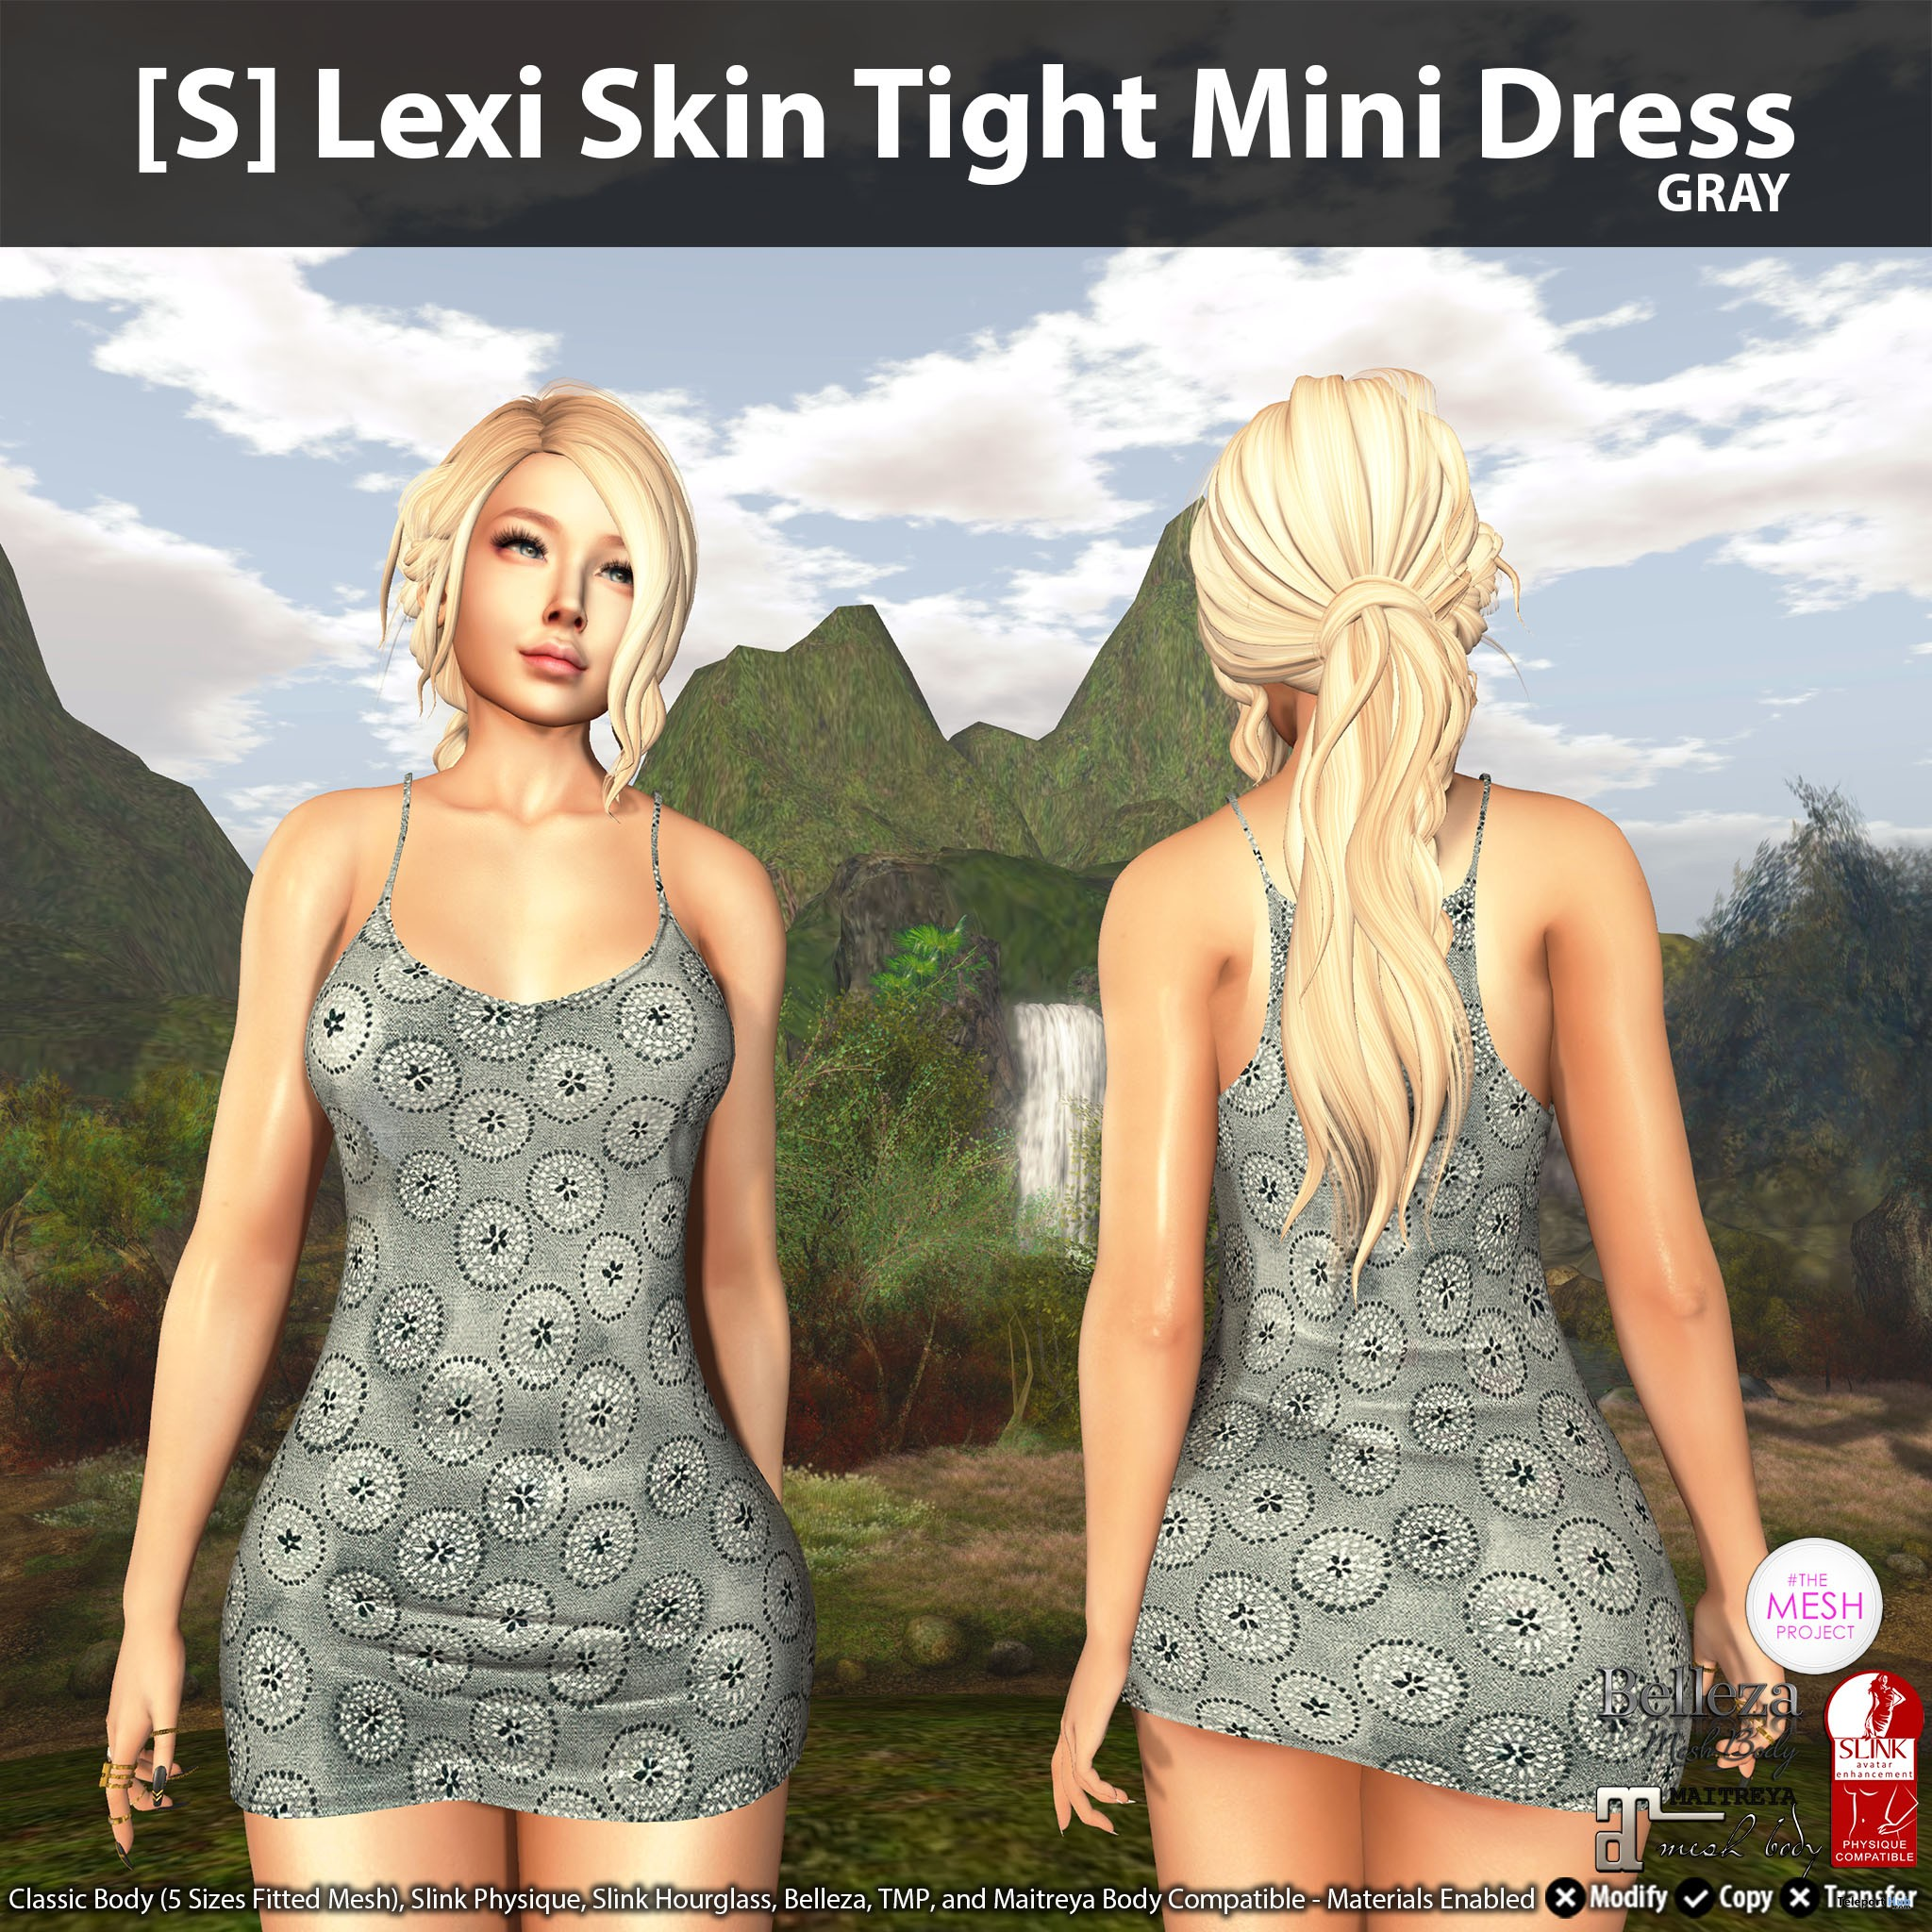 New Release: [S] Lexi Skin Tight Mini Dress by [satus Inc] - Teleport Hub - teleporthub.comNew Release: [S] Lexi Skin Tight Mini Dress by [satus Inc] - Teleport Hub - teleporthub.com